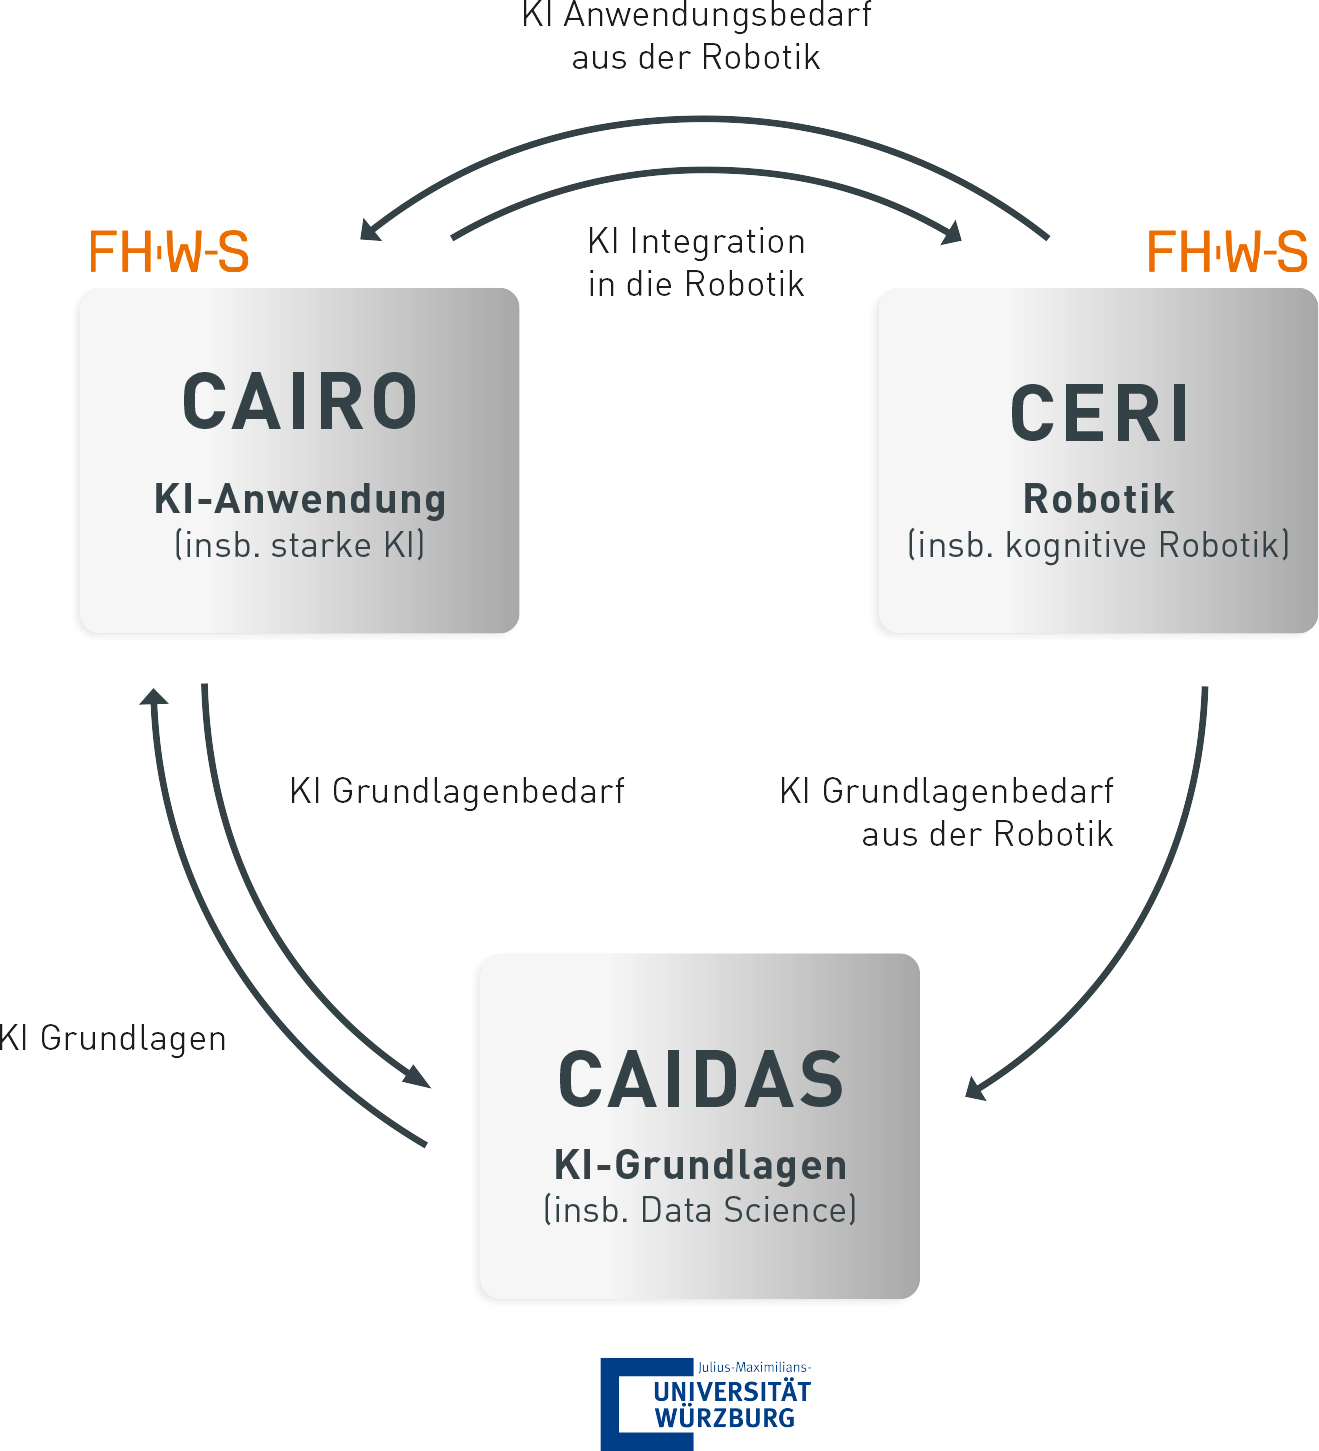 Technology and know-how transfer between CERI (especially cognitive robotics), CAIRO (especially strong AI) at FHWS and CAIDAS (especially data science) at JMU, as previously described in the text.